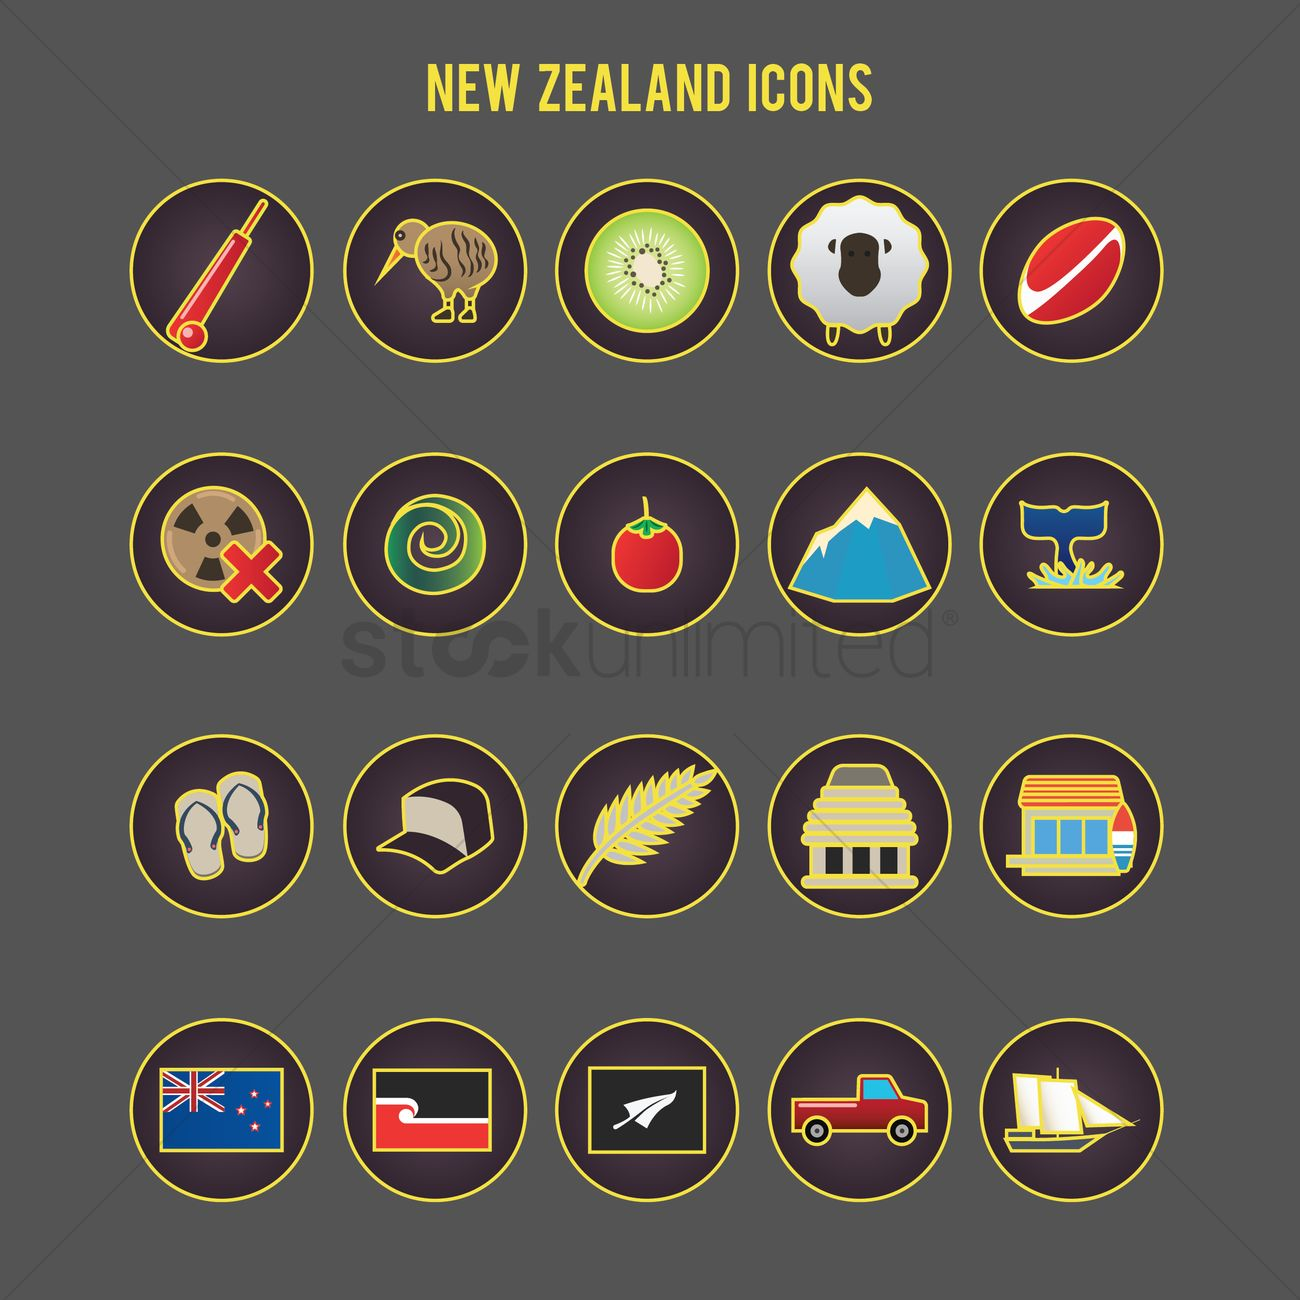 Set Of New Zealand Icons Vector Image 2017326 Stockunlimited